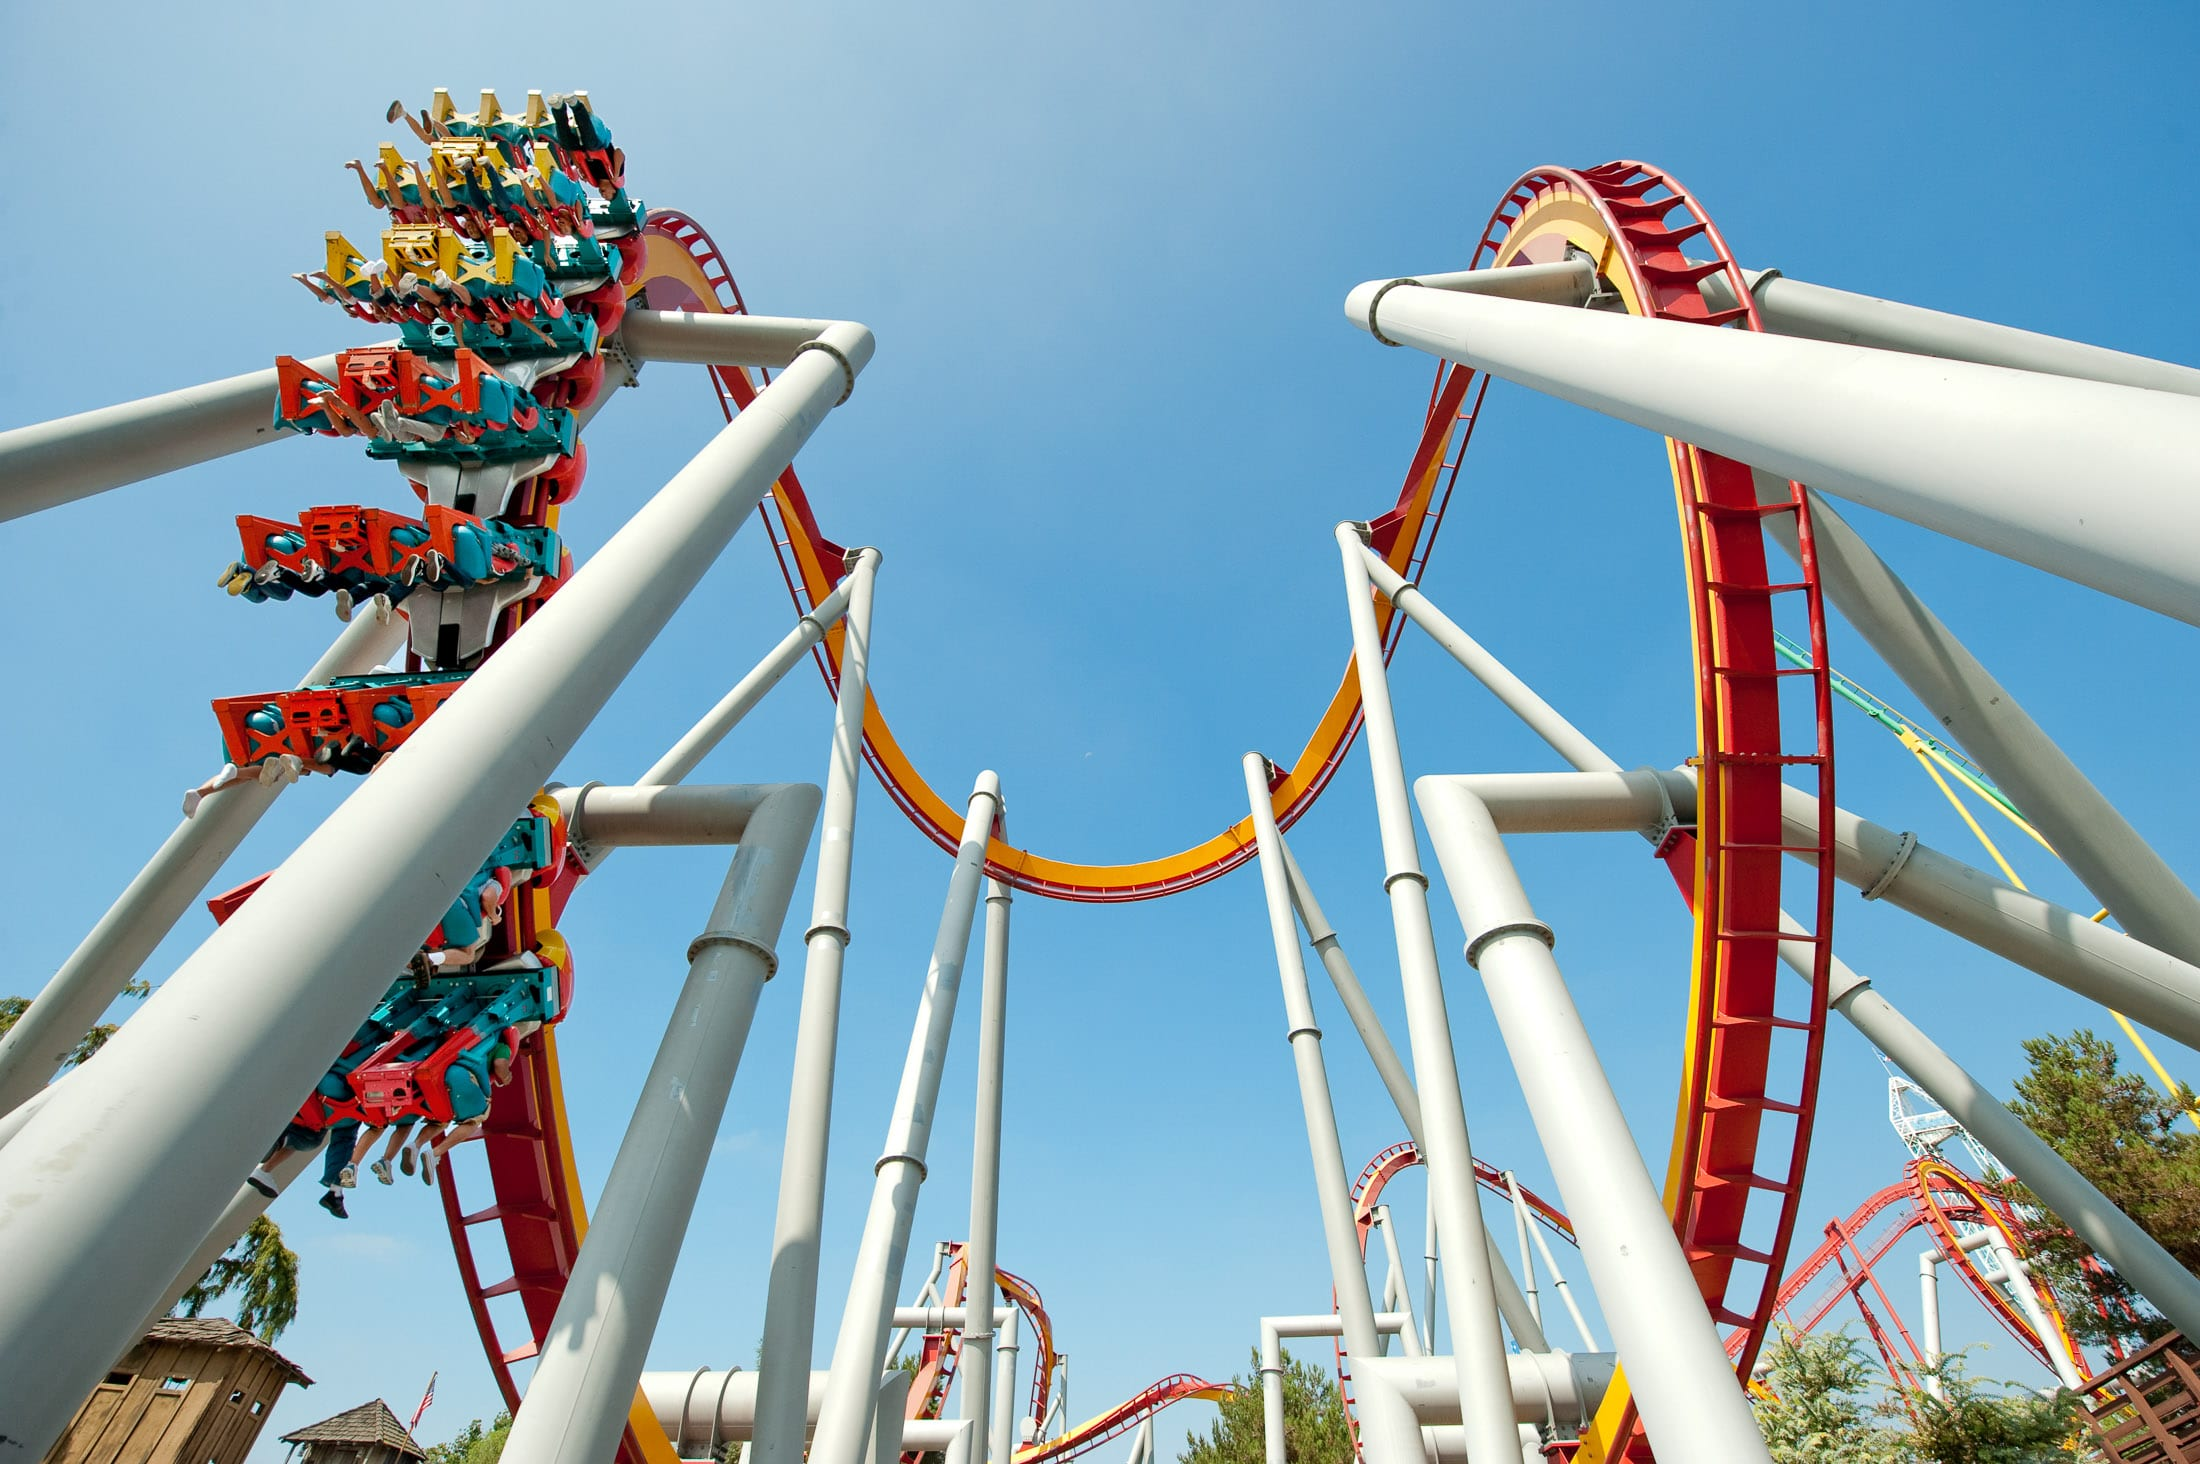 Knott's Berry Farm makes for a fun family vacation in California